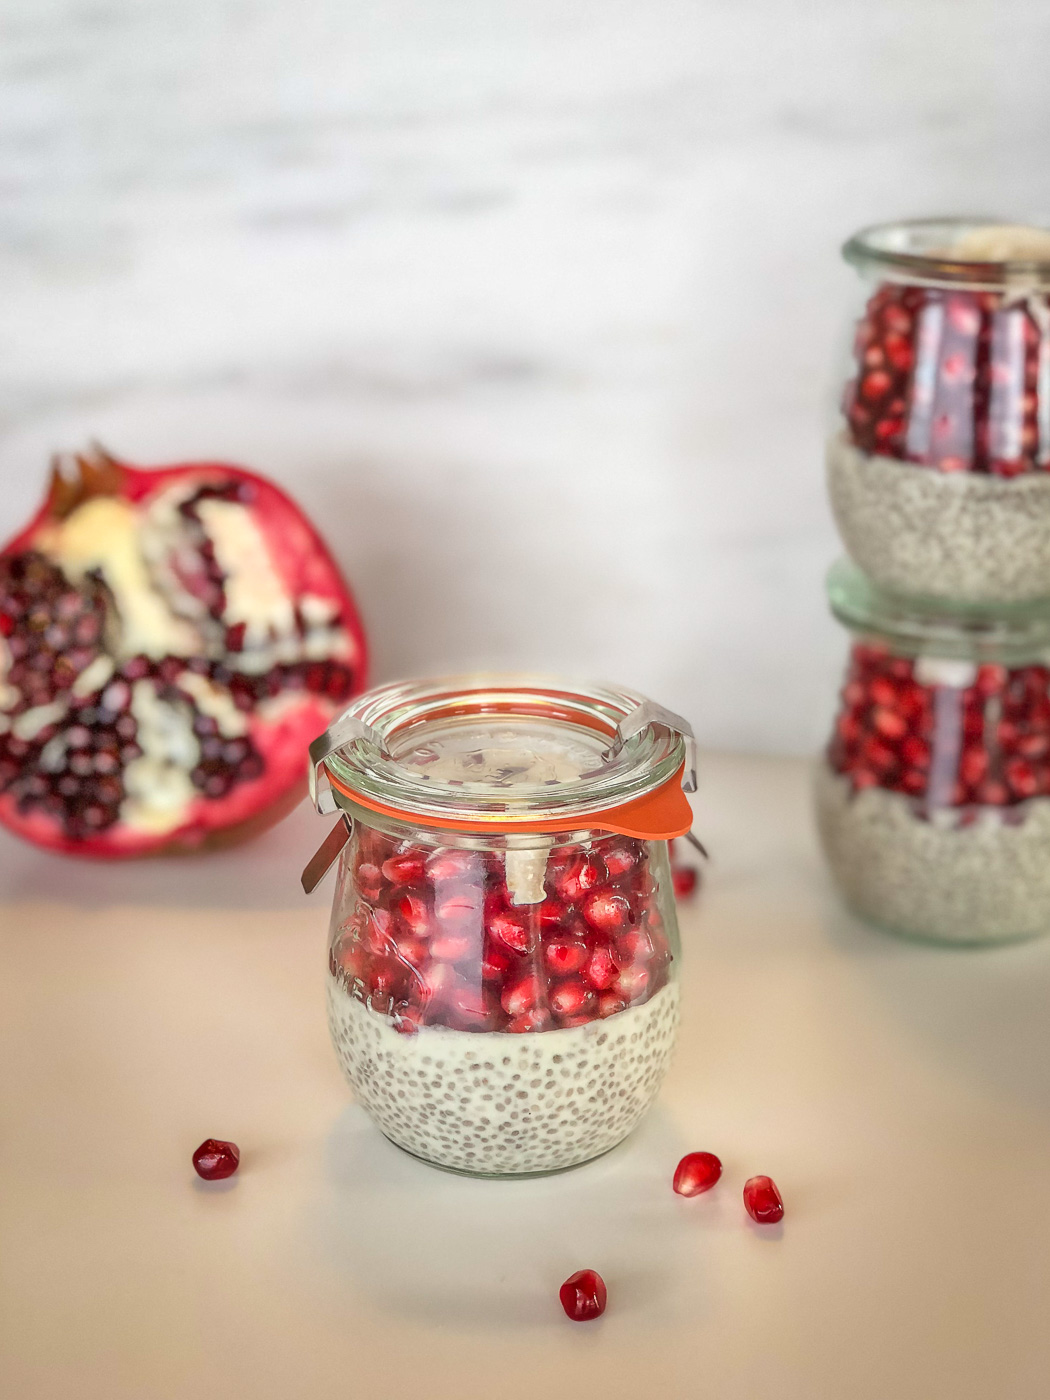 One close up jar of chia pudding with a pomegranate and more jars in the background